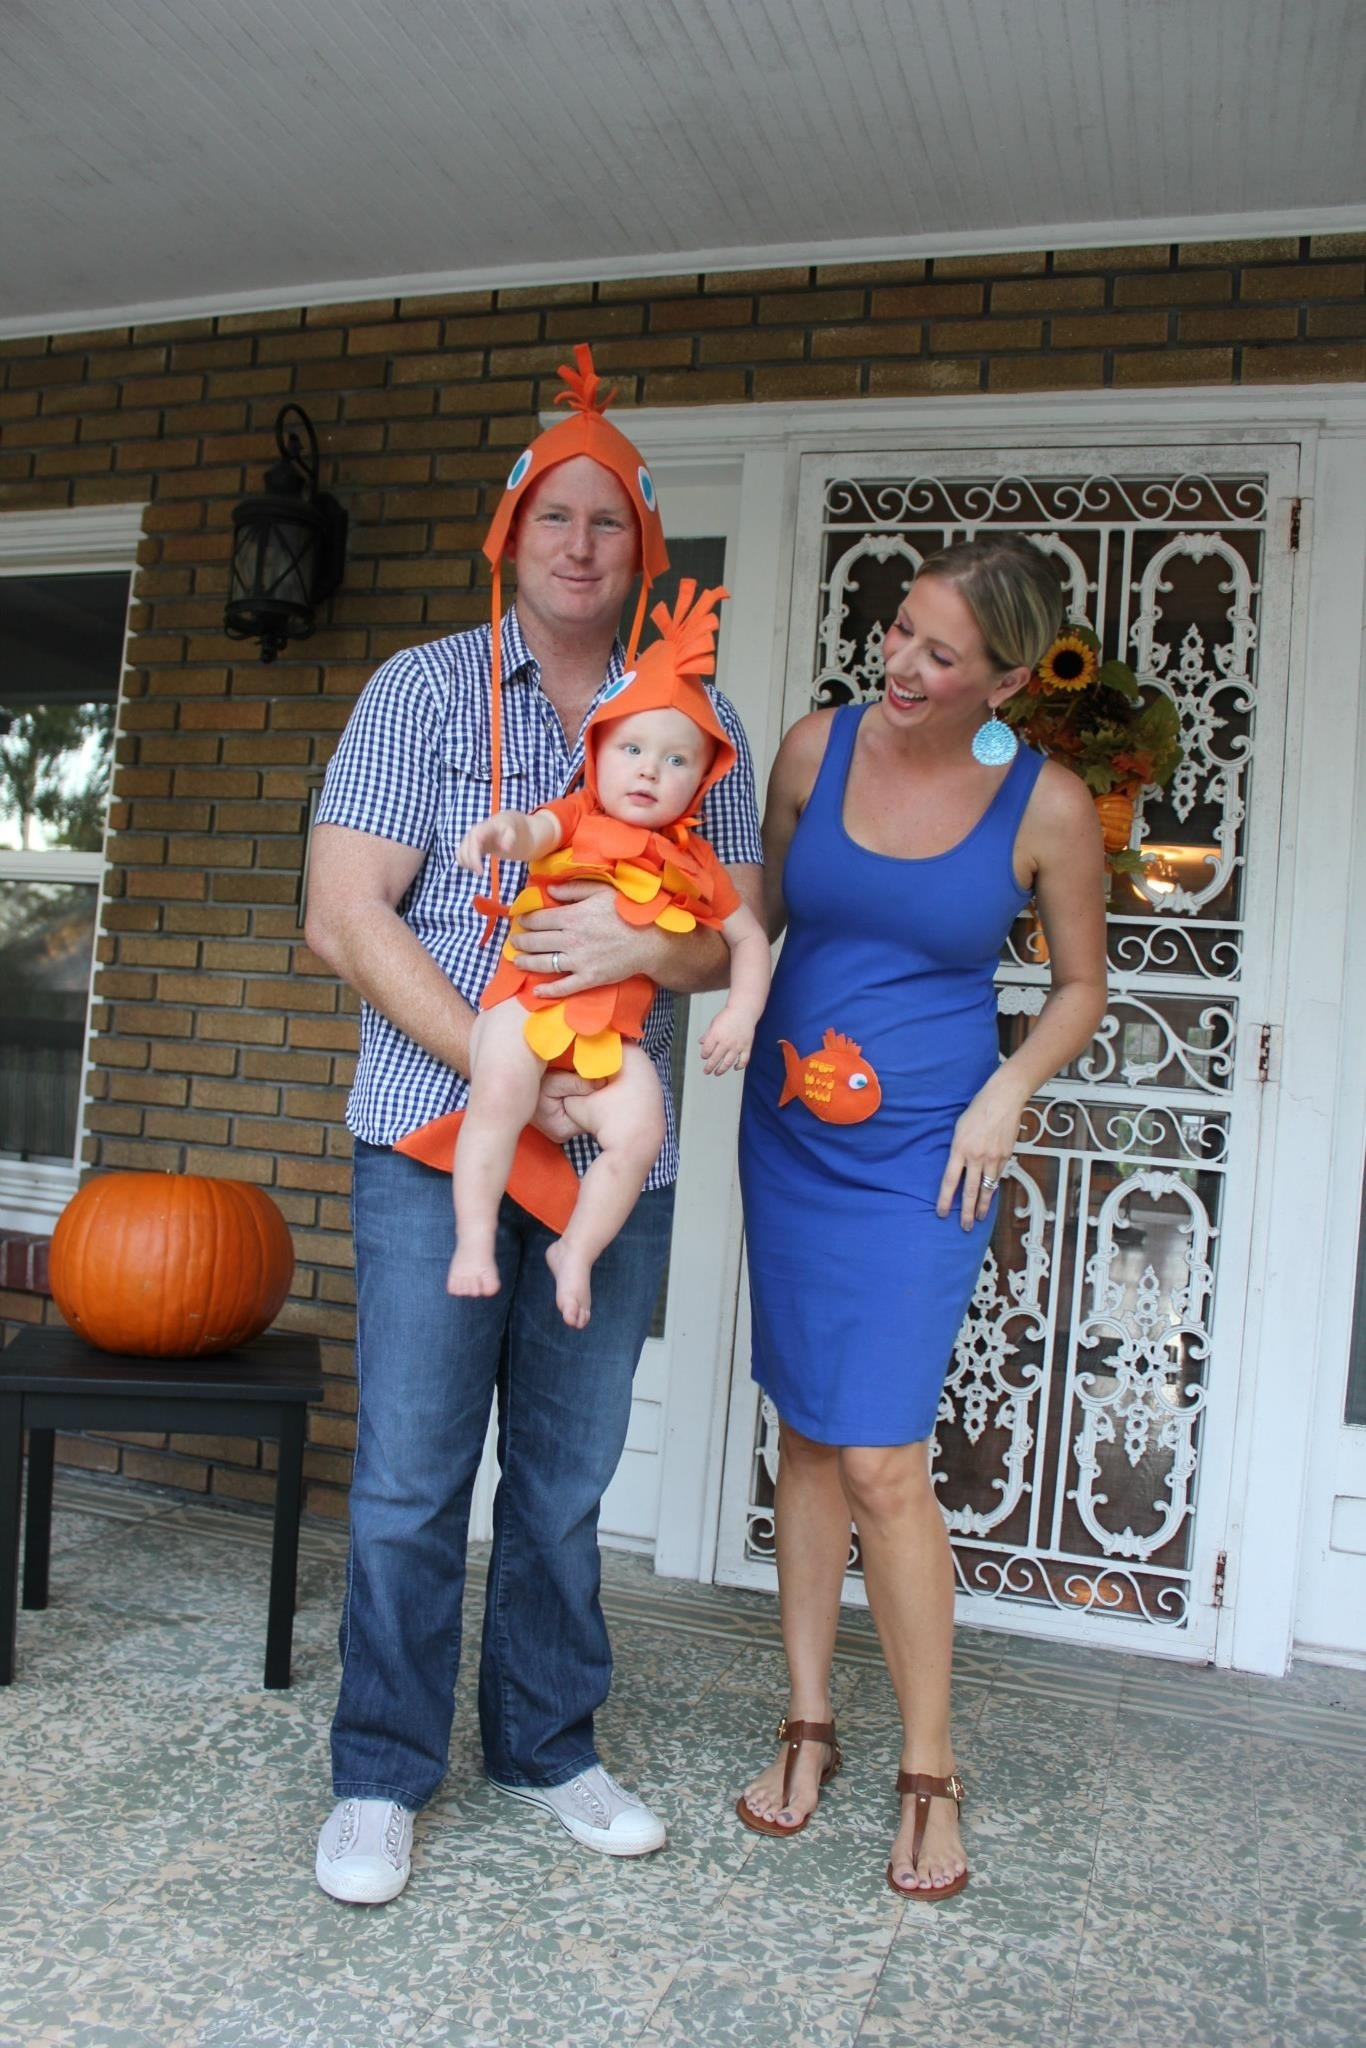 10 Fantastic Family Of 3 Halloween Costume Ideas diy fish costume for the family no sewing 4 2020